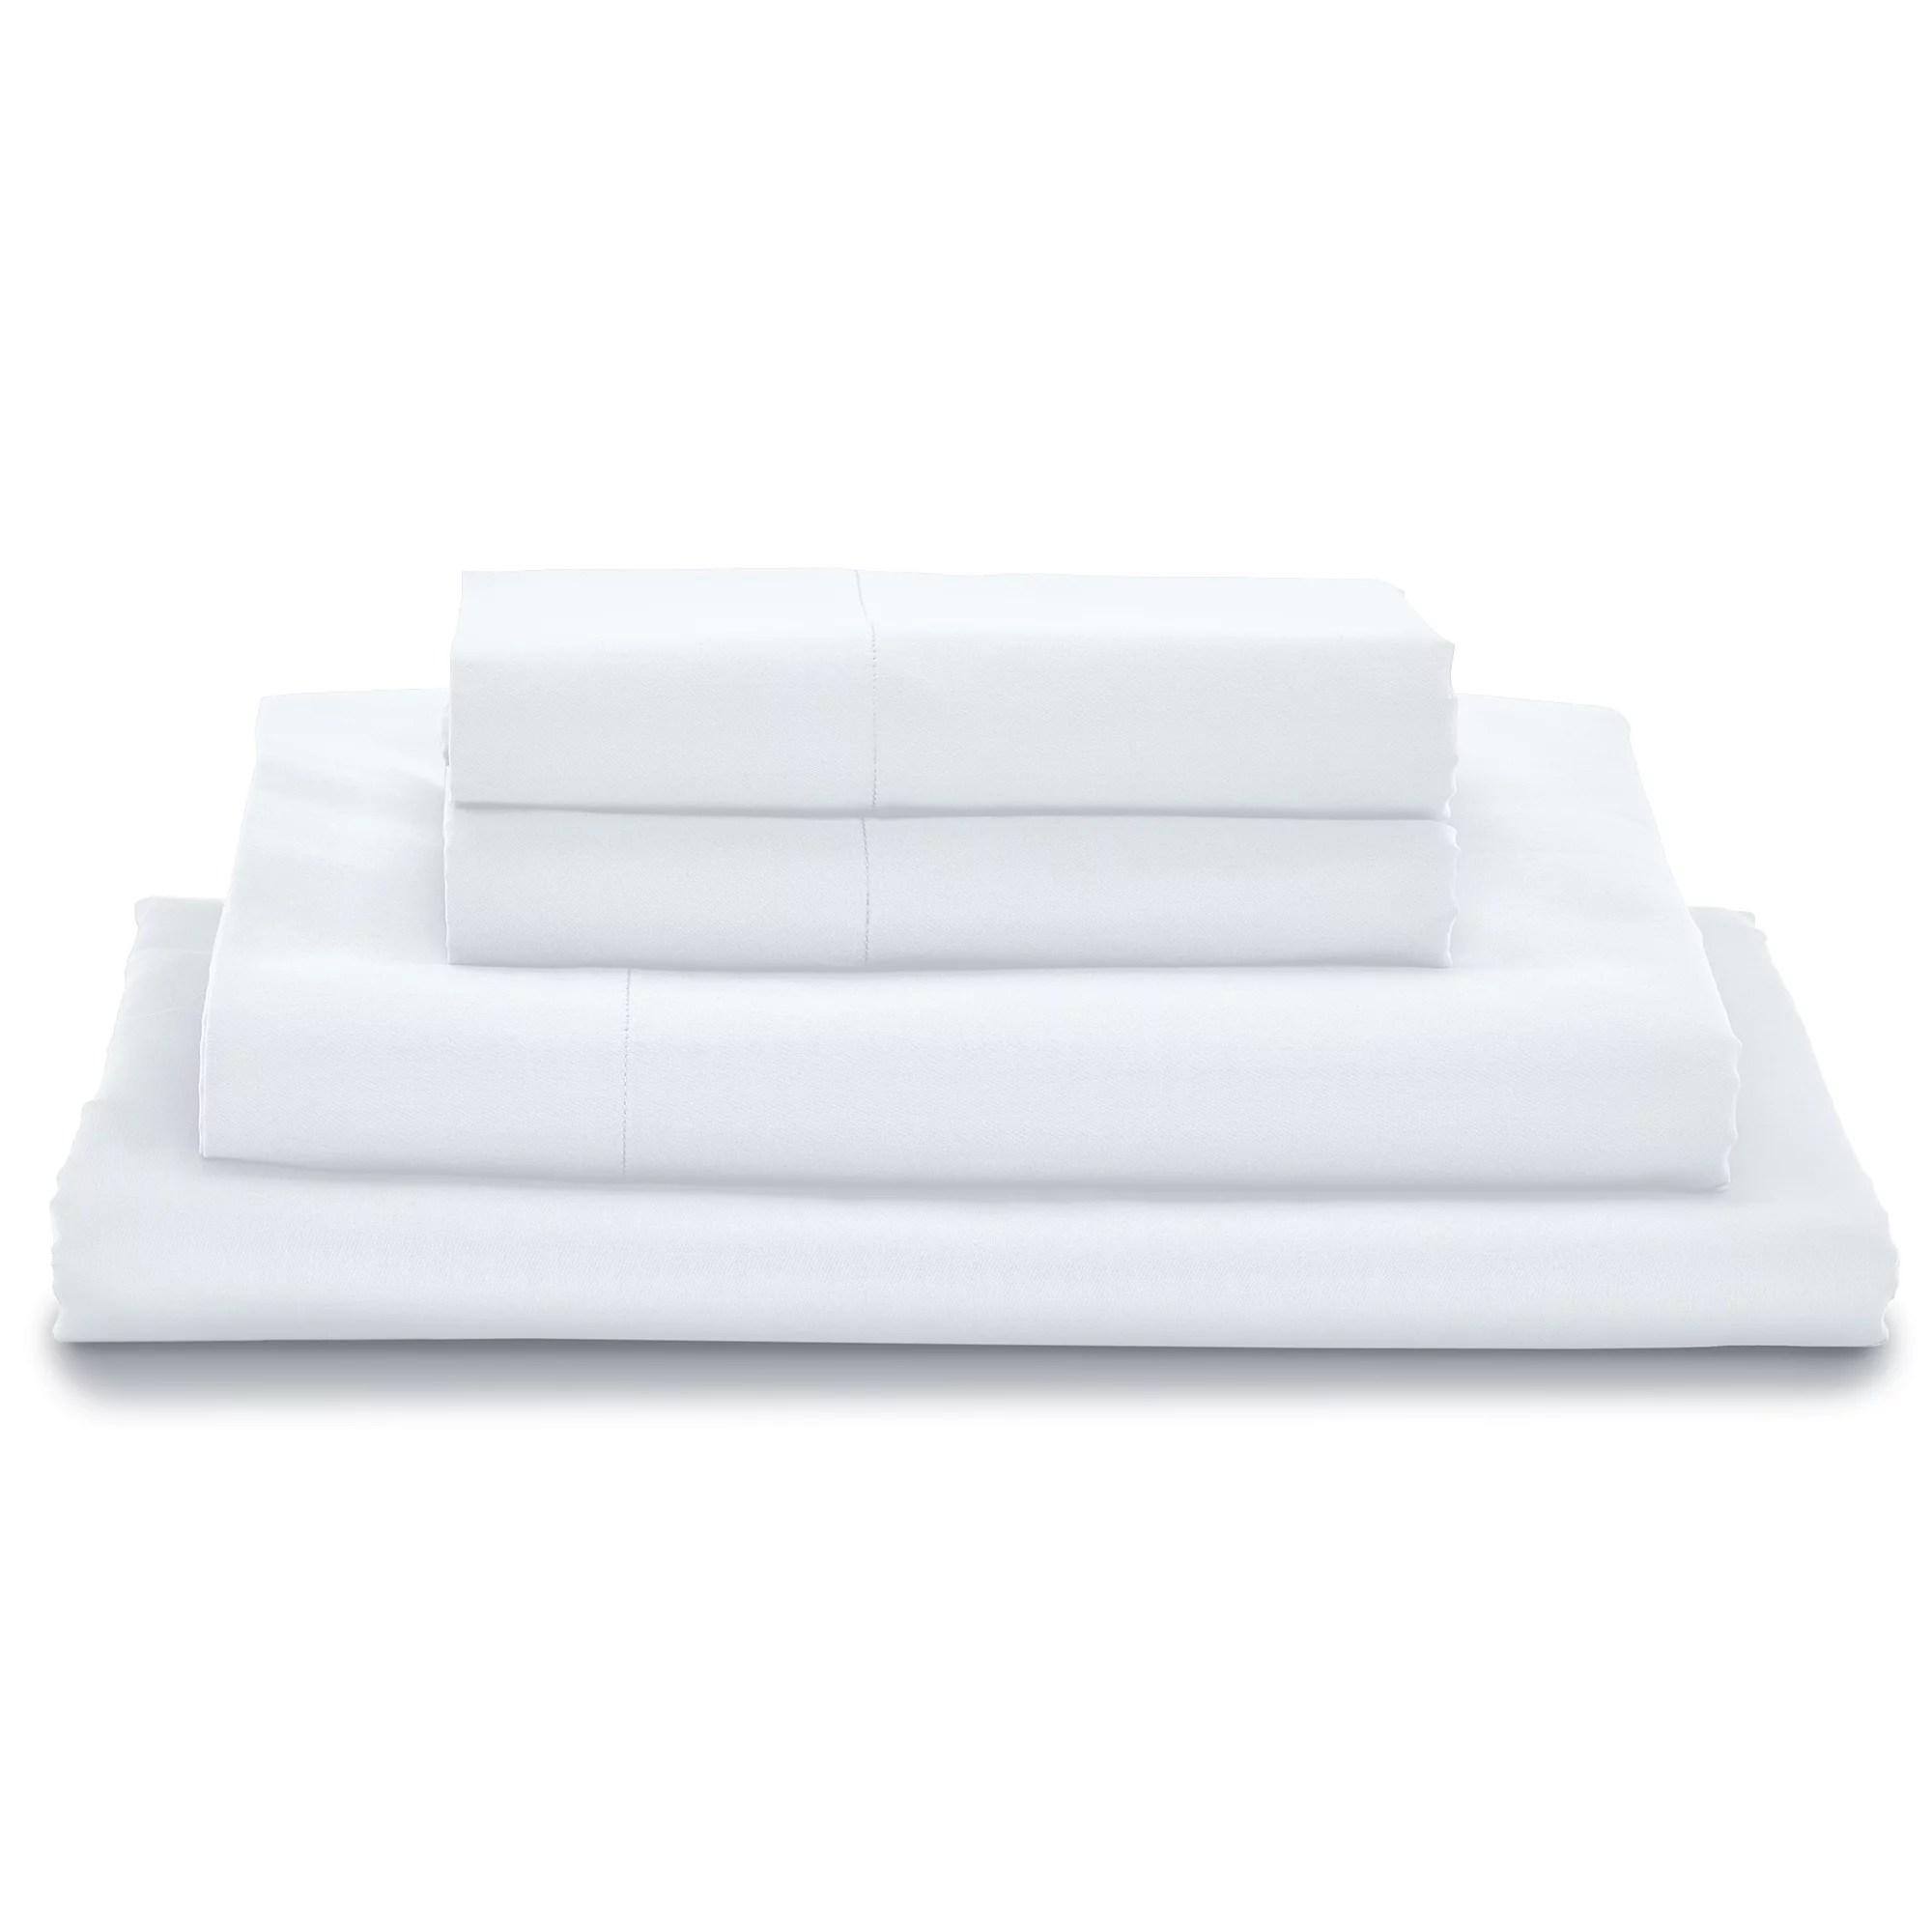 my pillow bed sheets full white long staple cotton giza dreams bed sheet set